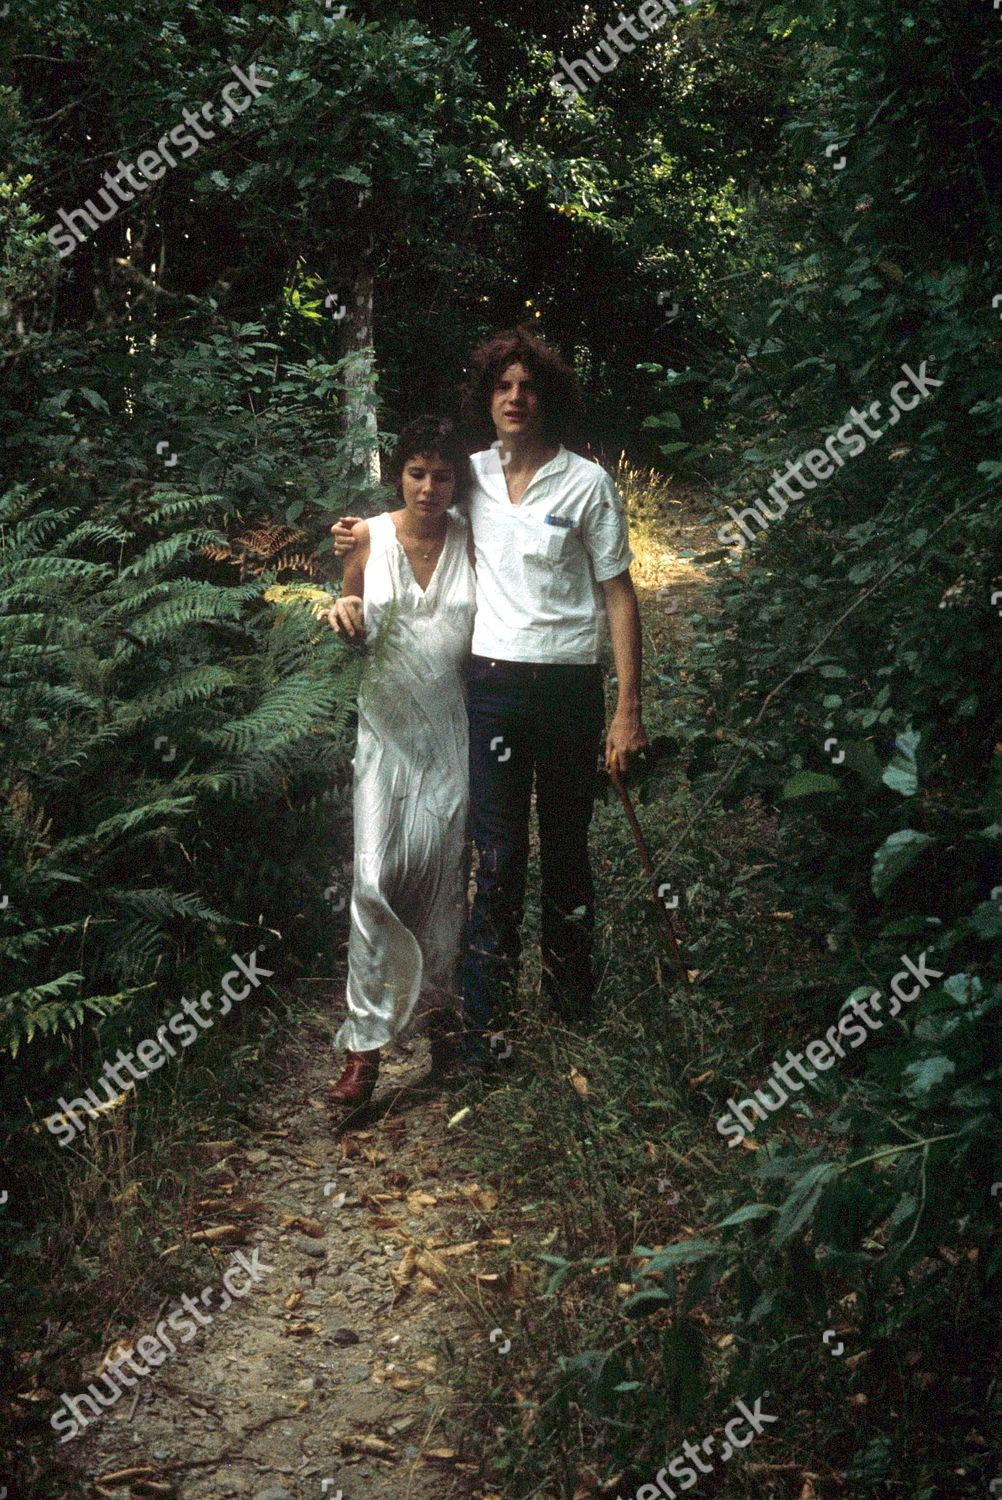 Stock photo of PAUL GETTY III JNR AND WIFE MARTINE WALKING IN THE COUNTRY - 1984